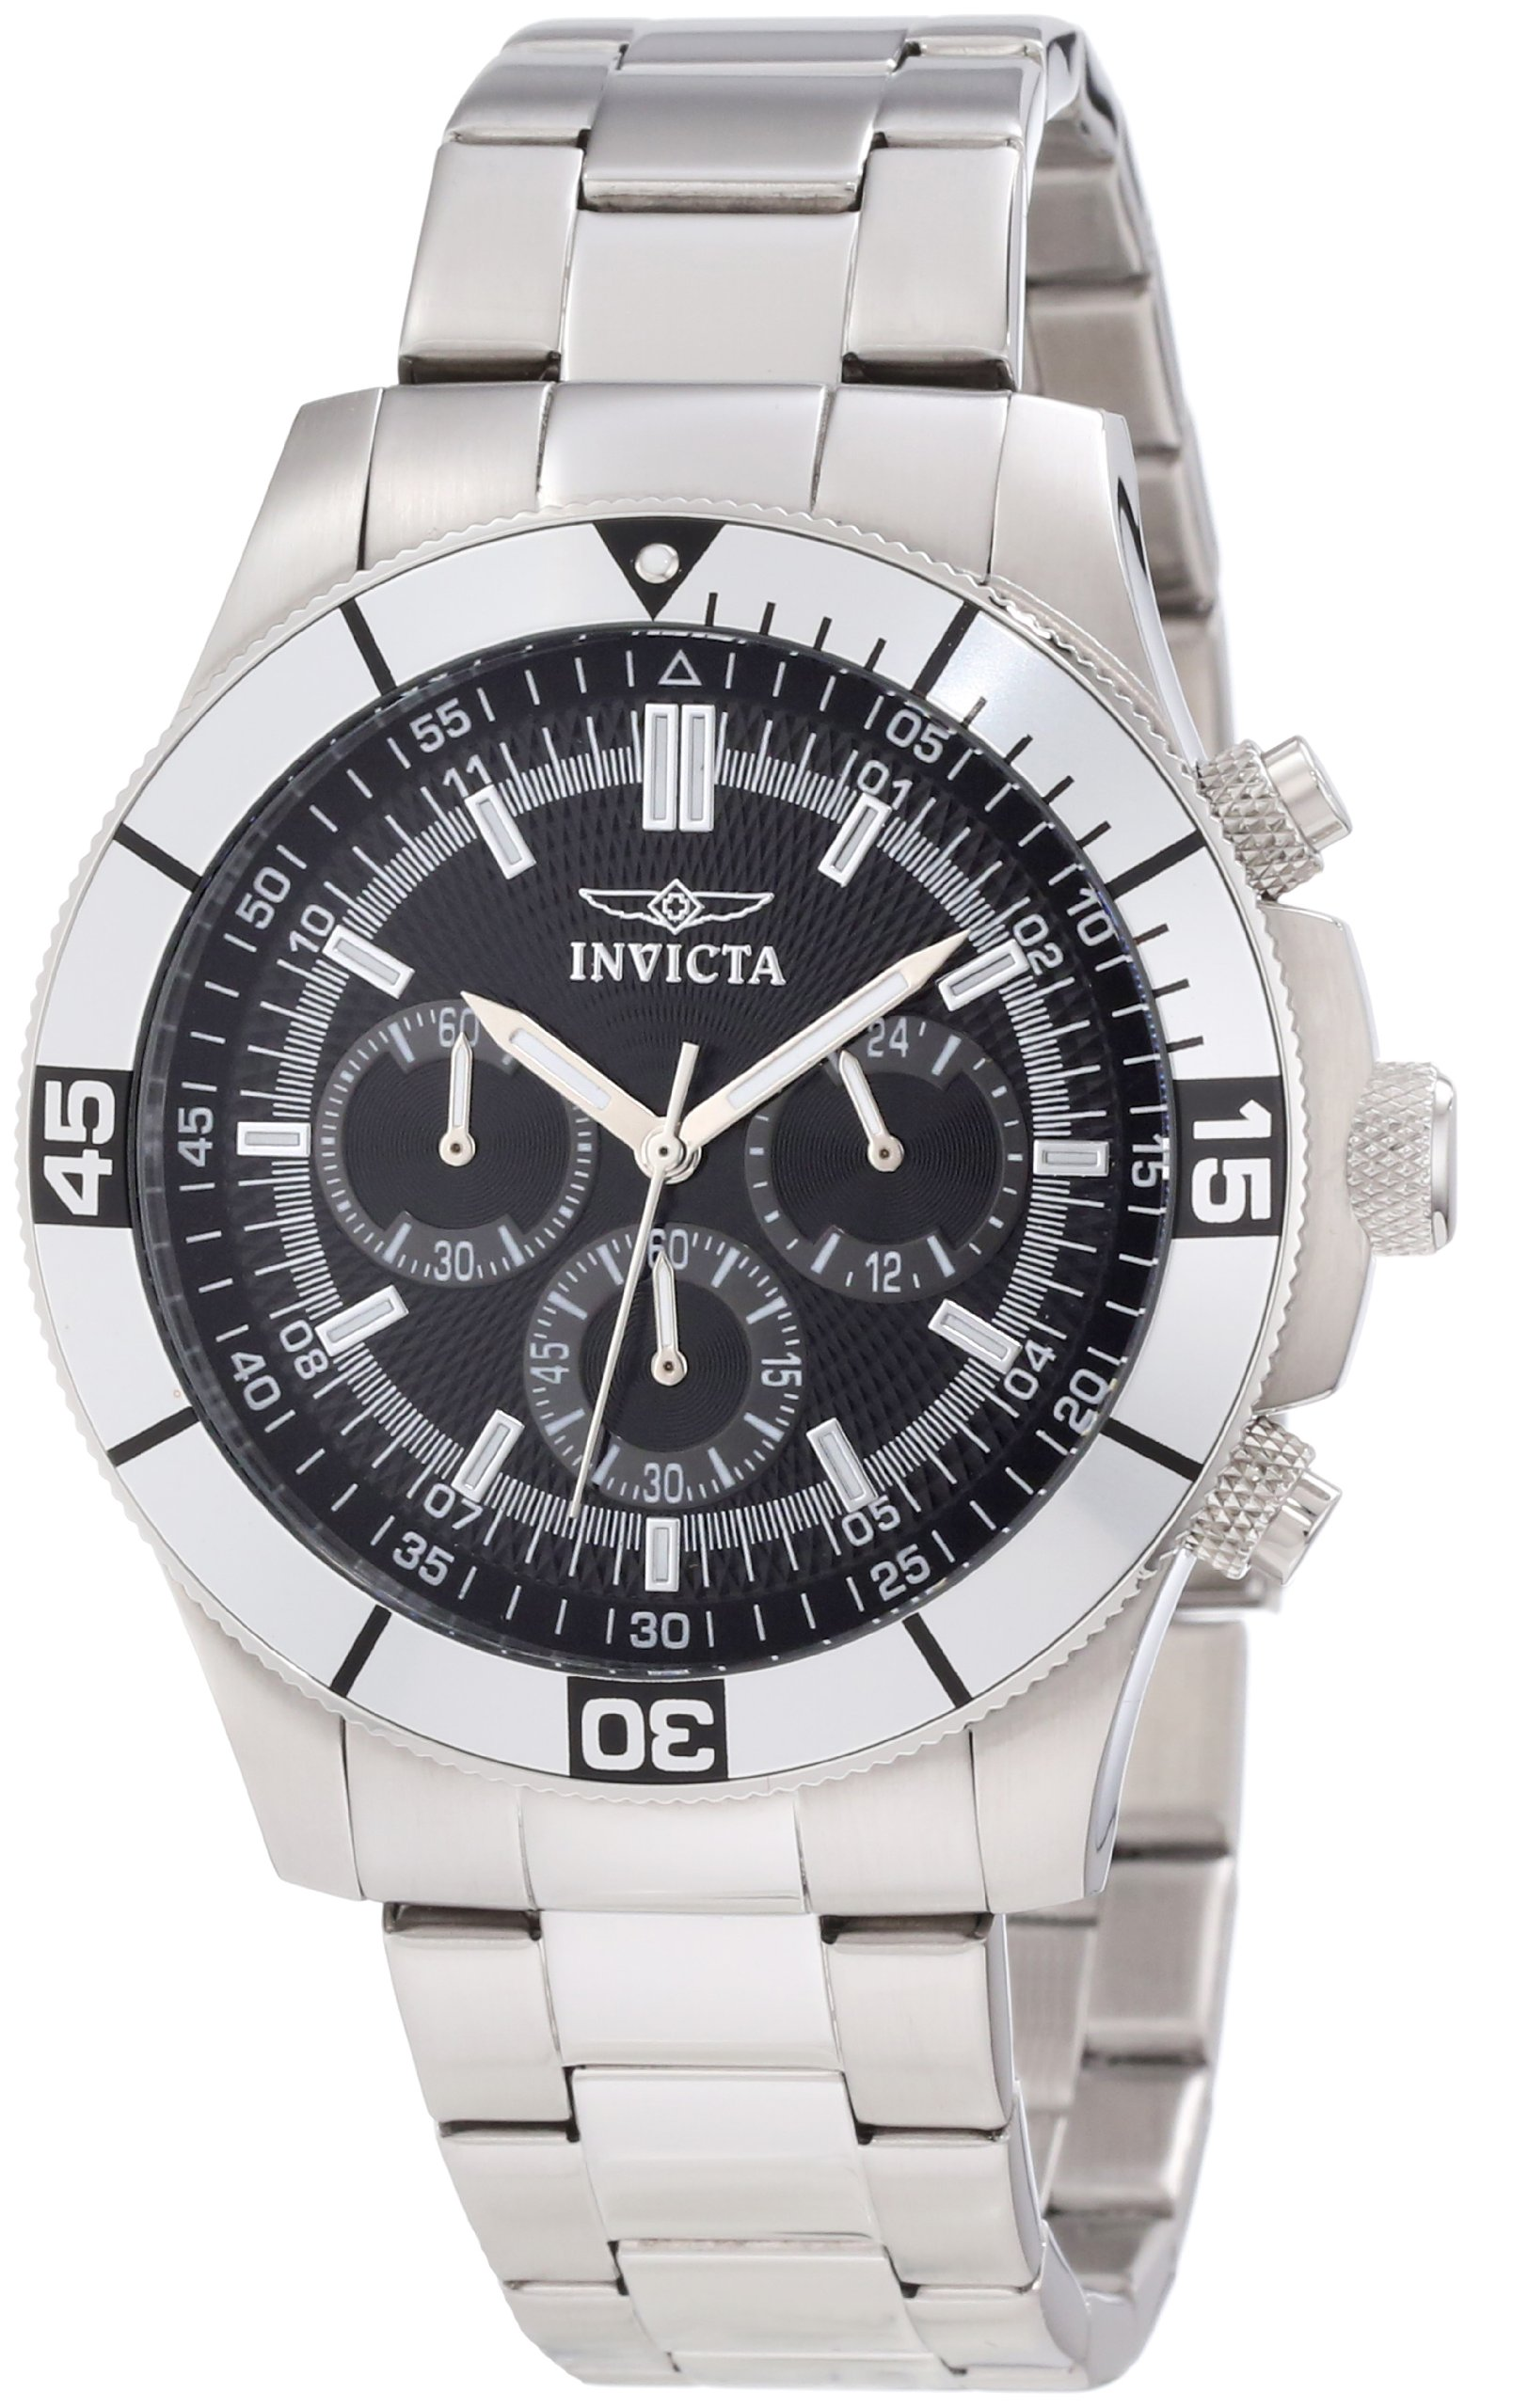 Invicta Men's 12839 Specialty Chronograph Black Dial Watch